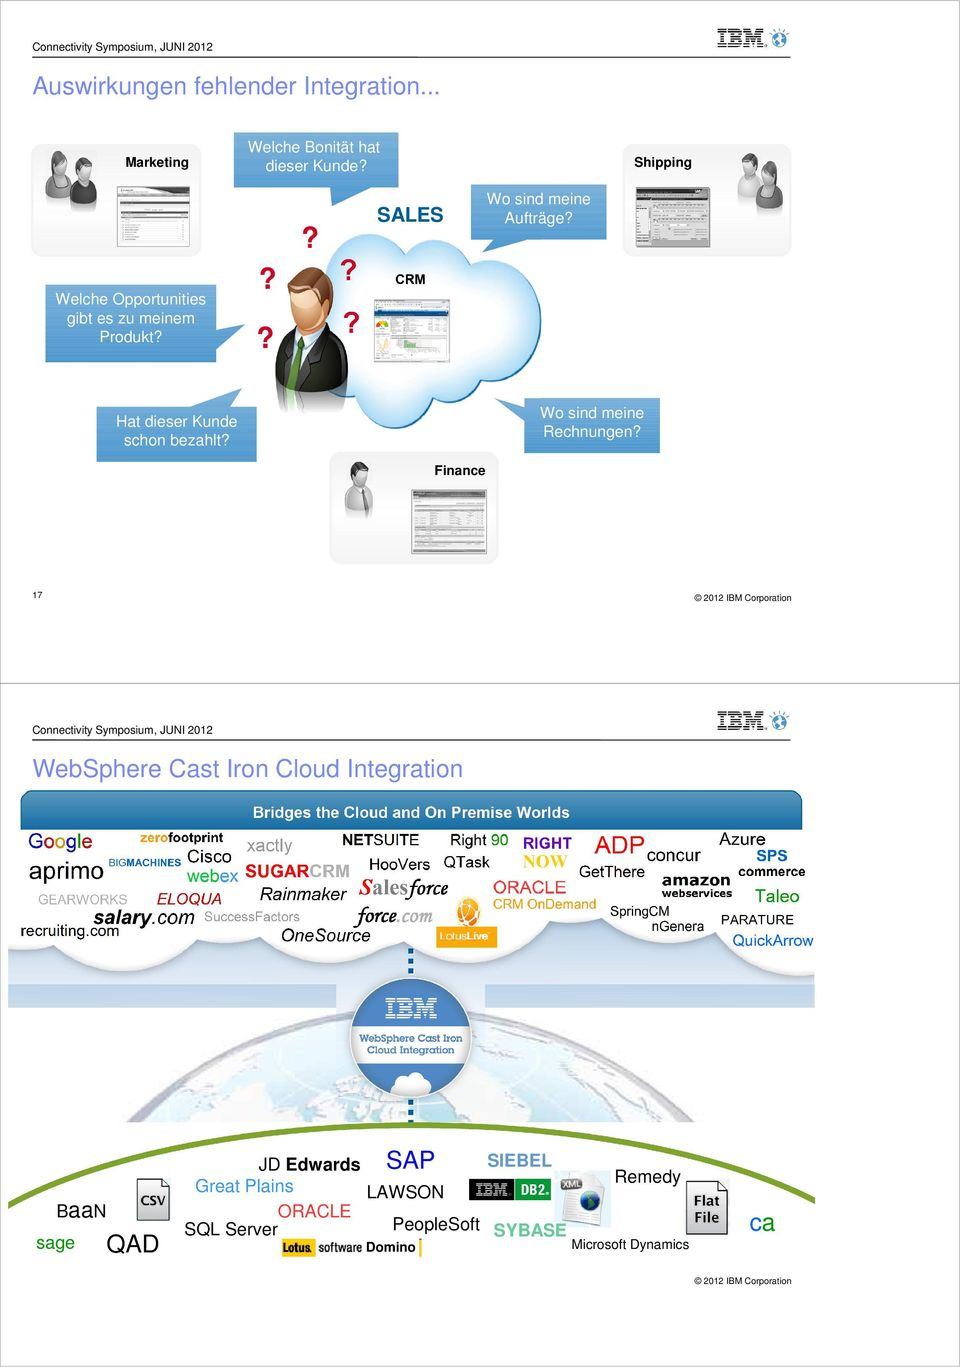 Finance 17 WebSphere Cast Iron Cloud Integration Bridges the Cloud and On Premise Worlds Google zerofootprint xactly NETSUITE Right 90 RIGHT ADP BIGMACHINES Cisco QTask NOW concur aprimo webex